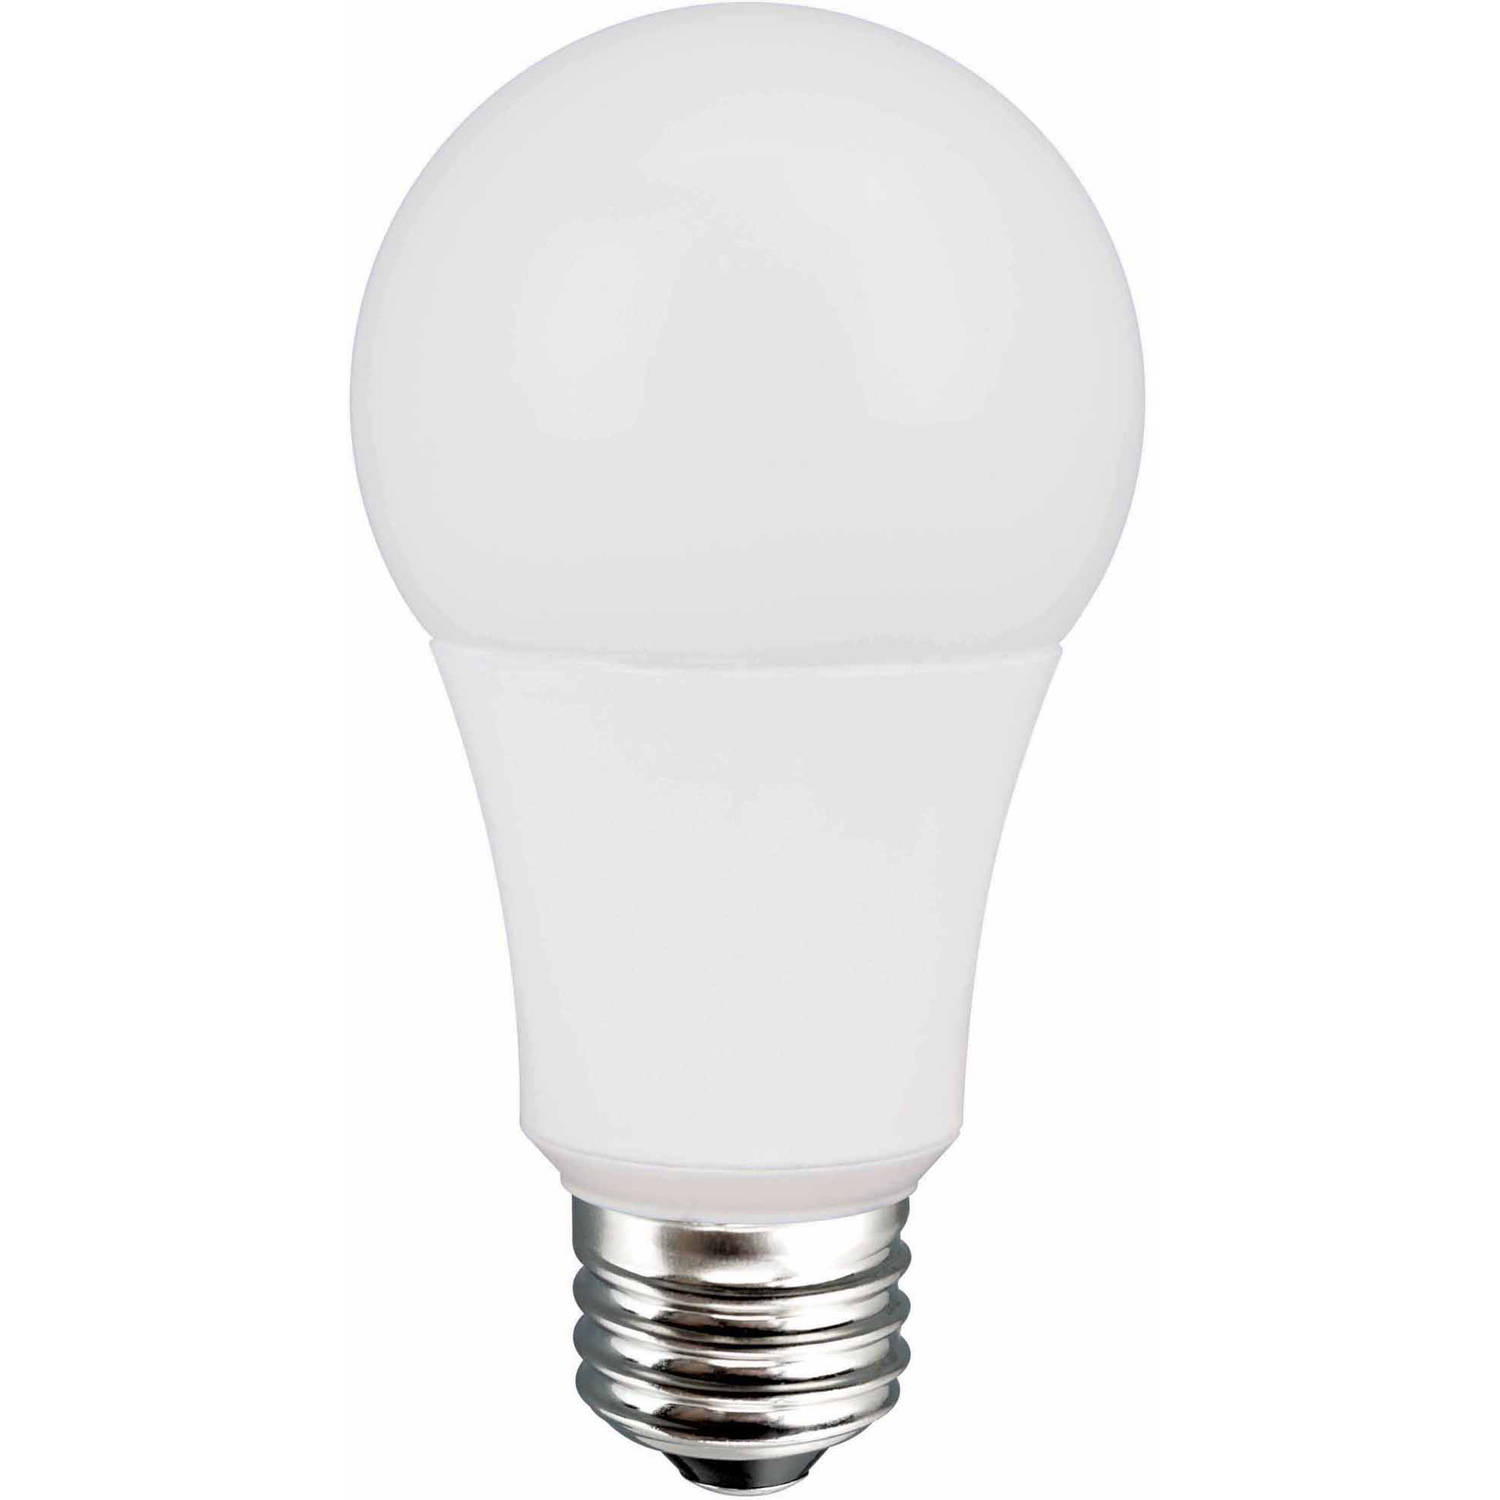 How to Choose the Perfect Light Bulb for Your Lighting Fixture